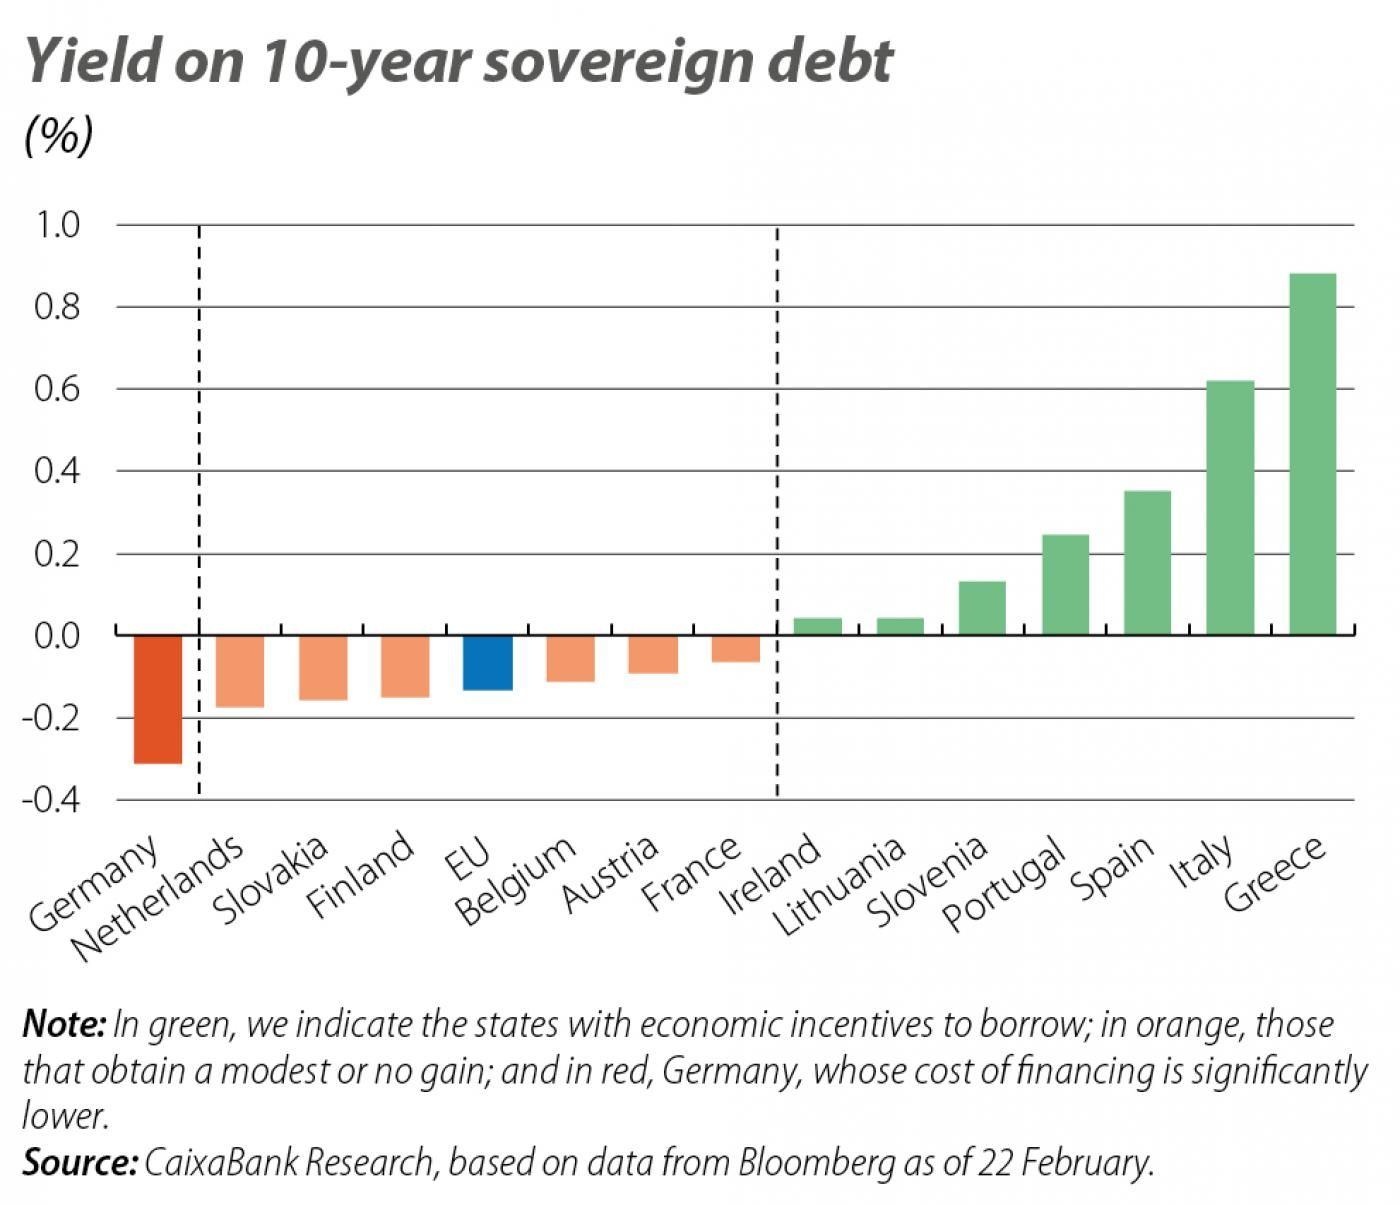 Yield on 10-year sovereign debt